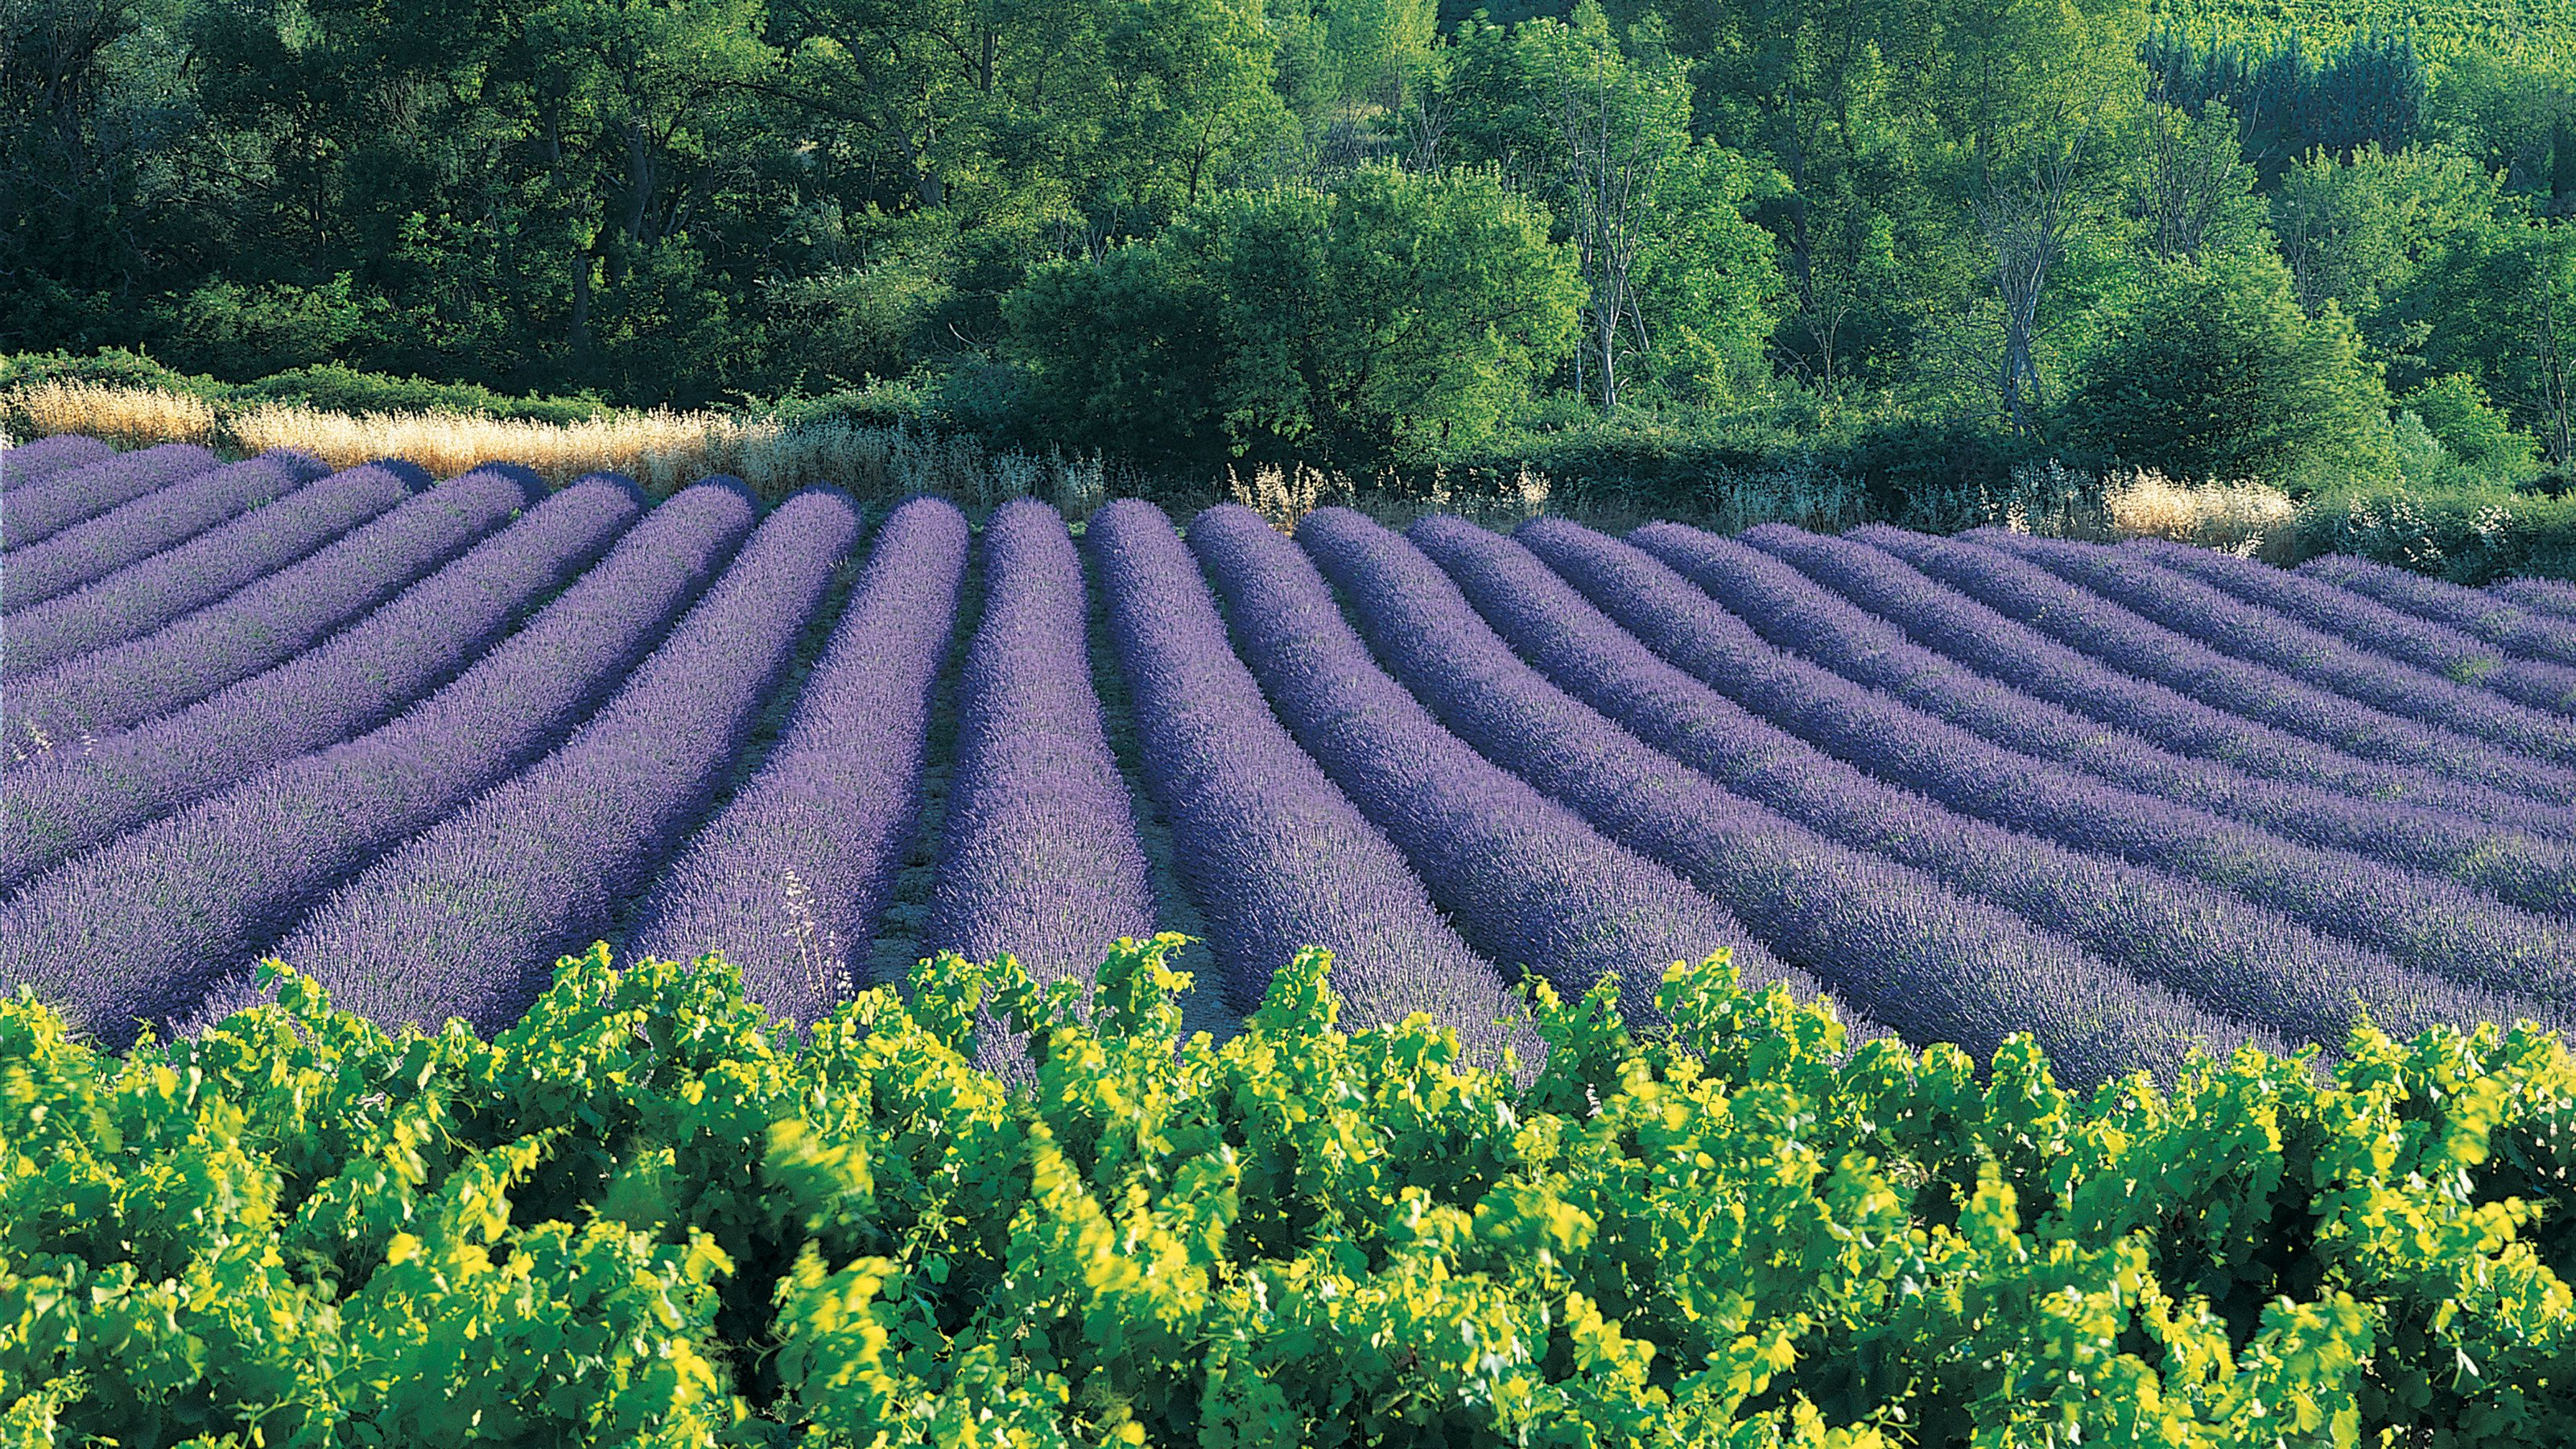 Rows of blooming lavender in a field in Provence